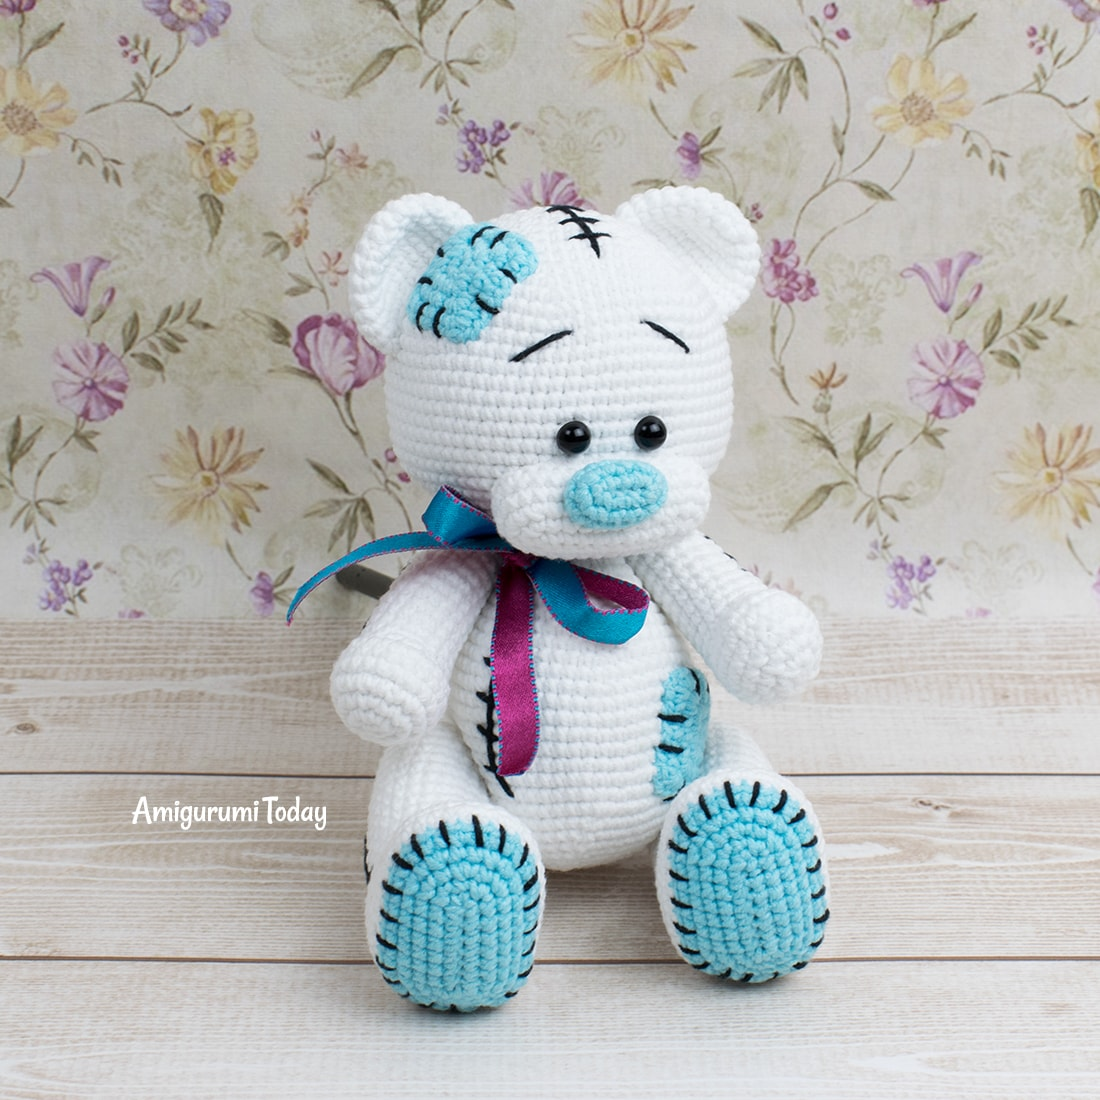 Free Teddy Bear crochet pattern designed by Amigurumi Today